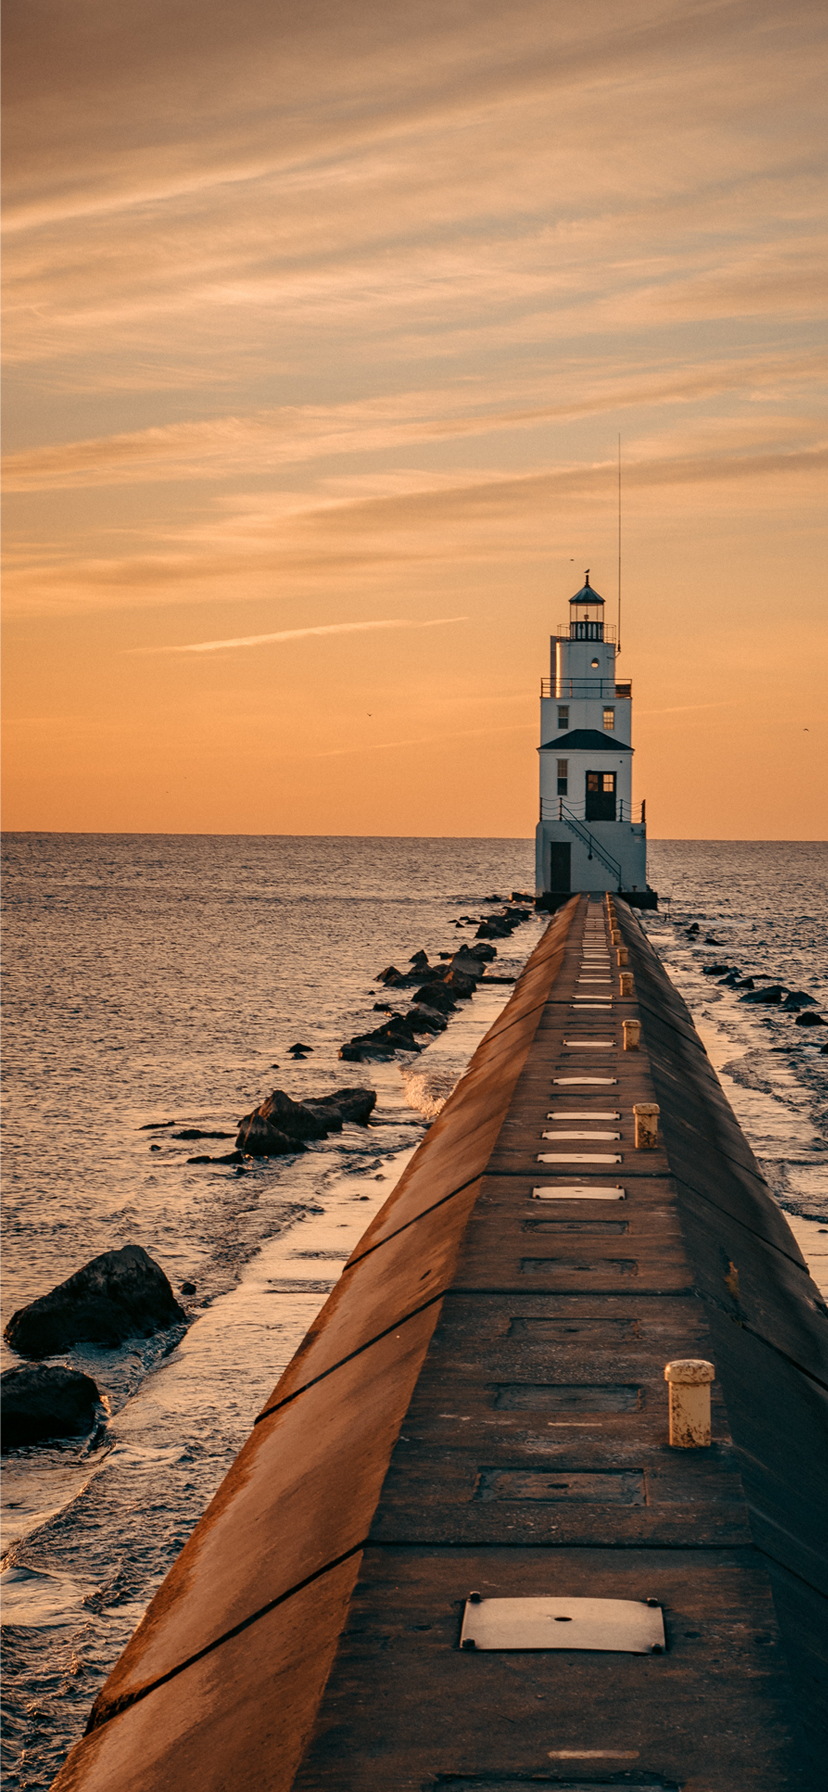 Beach Wallpaper For Iphone 05 Lighthouse During Sunset Hd Wallpapers Wallpapers Download High Resolution Wallpapers